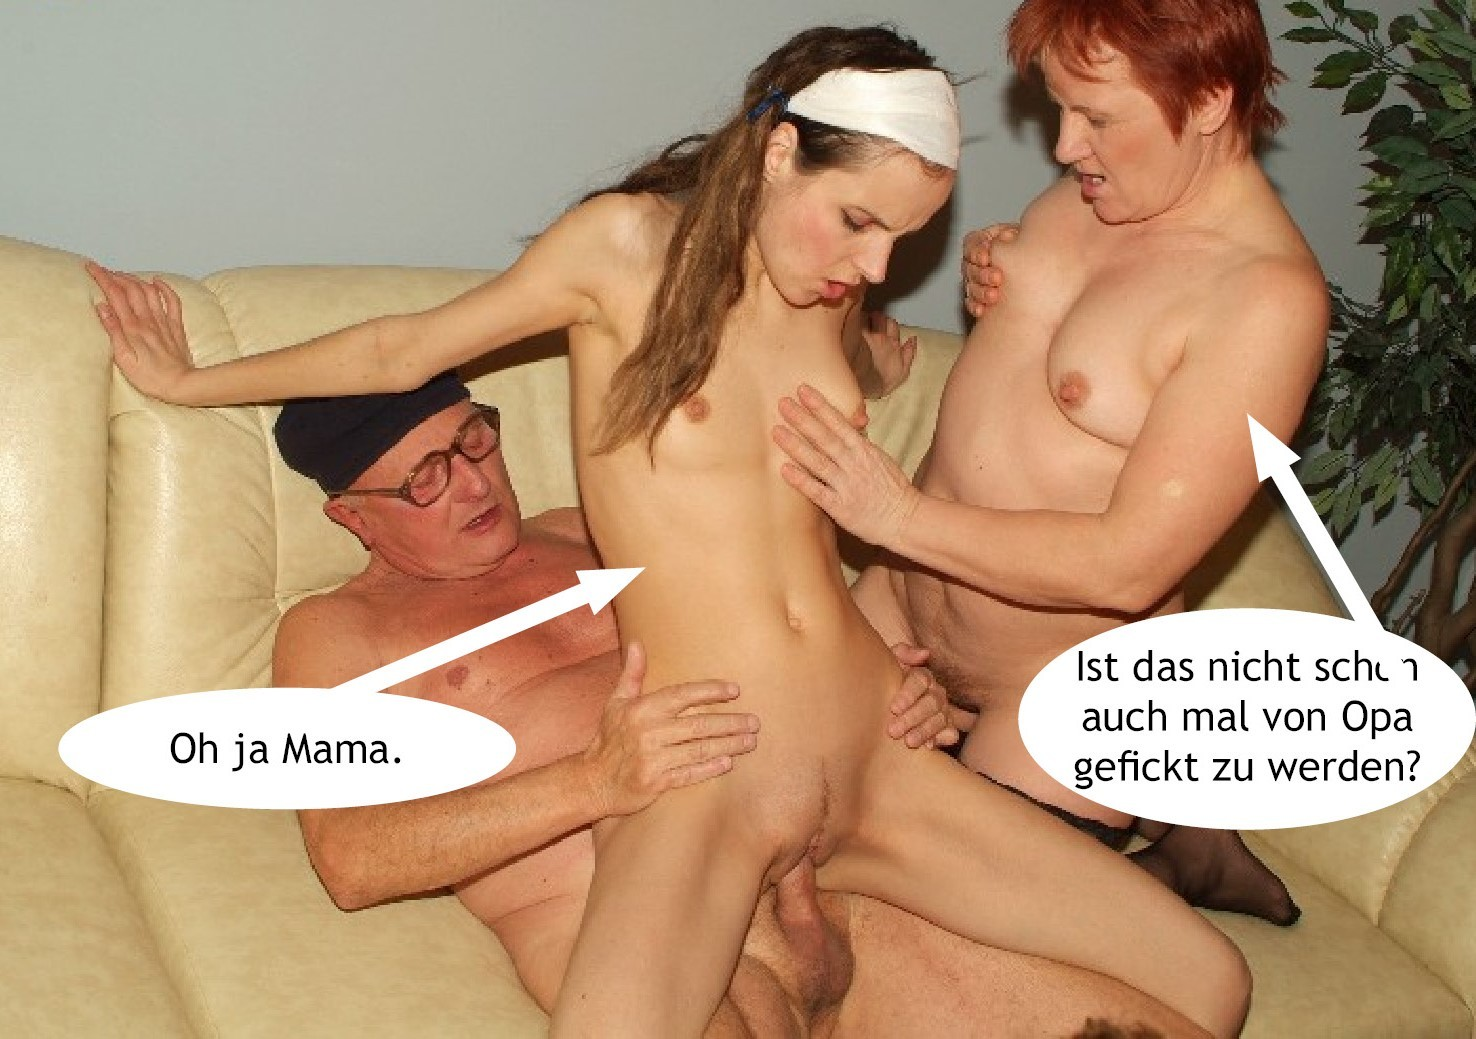 Cuckold archive busty milf pleasuring bbc bull